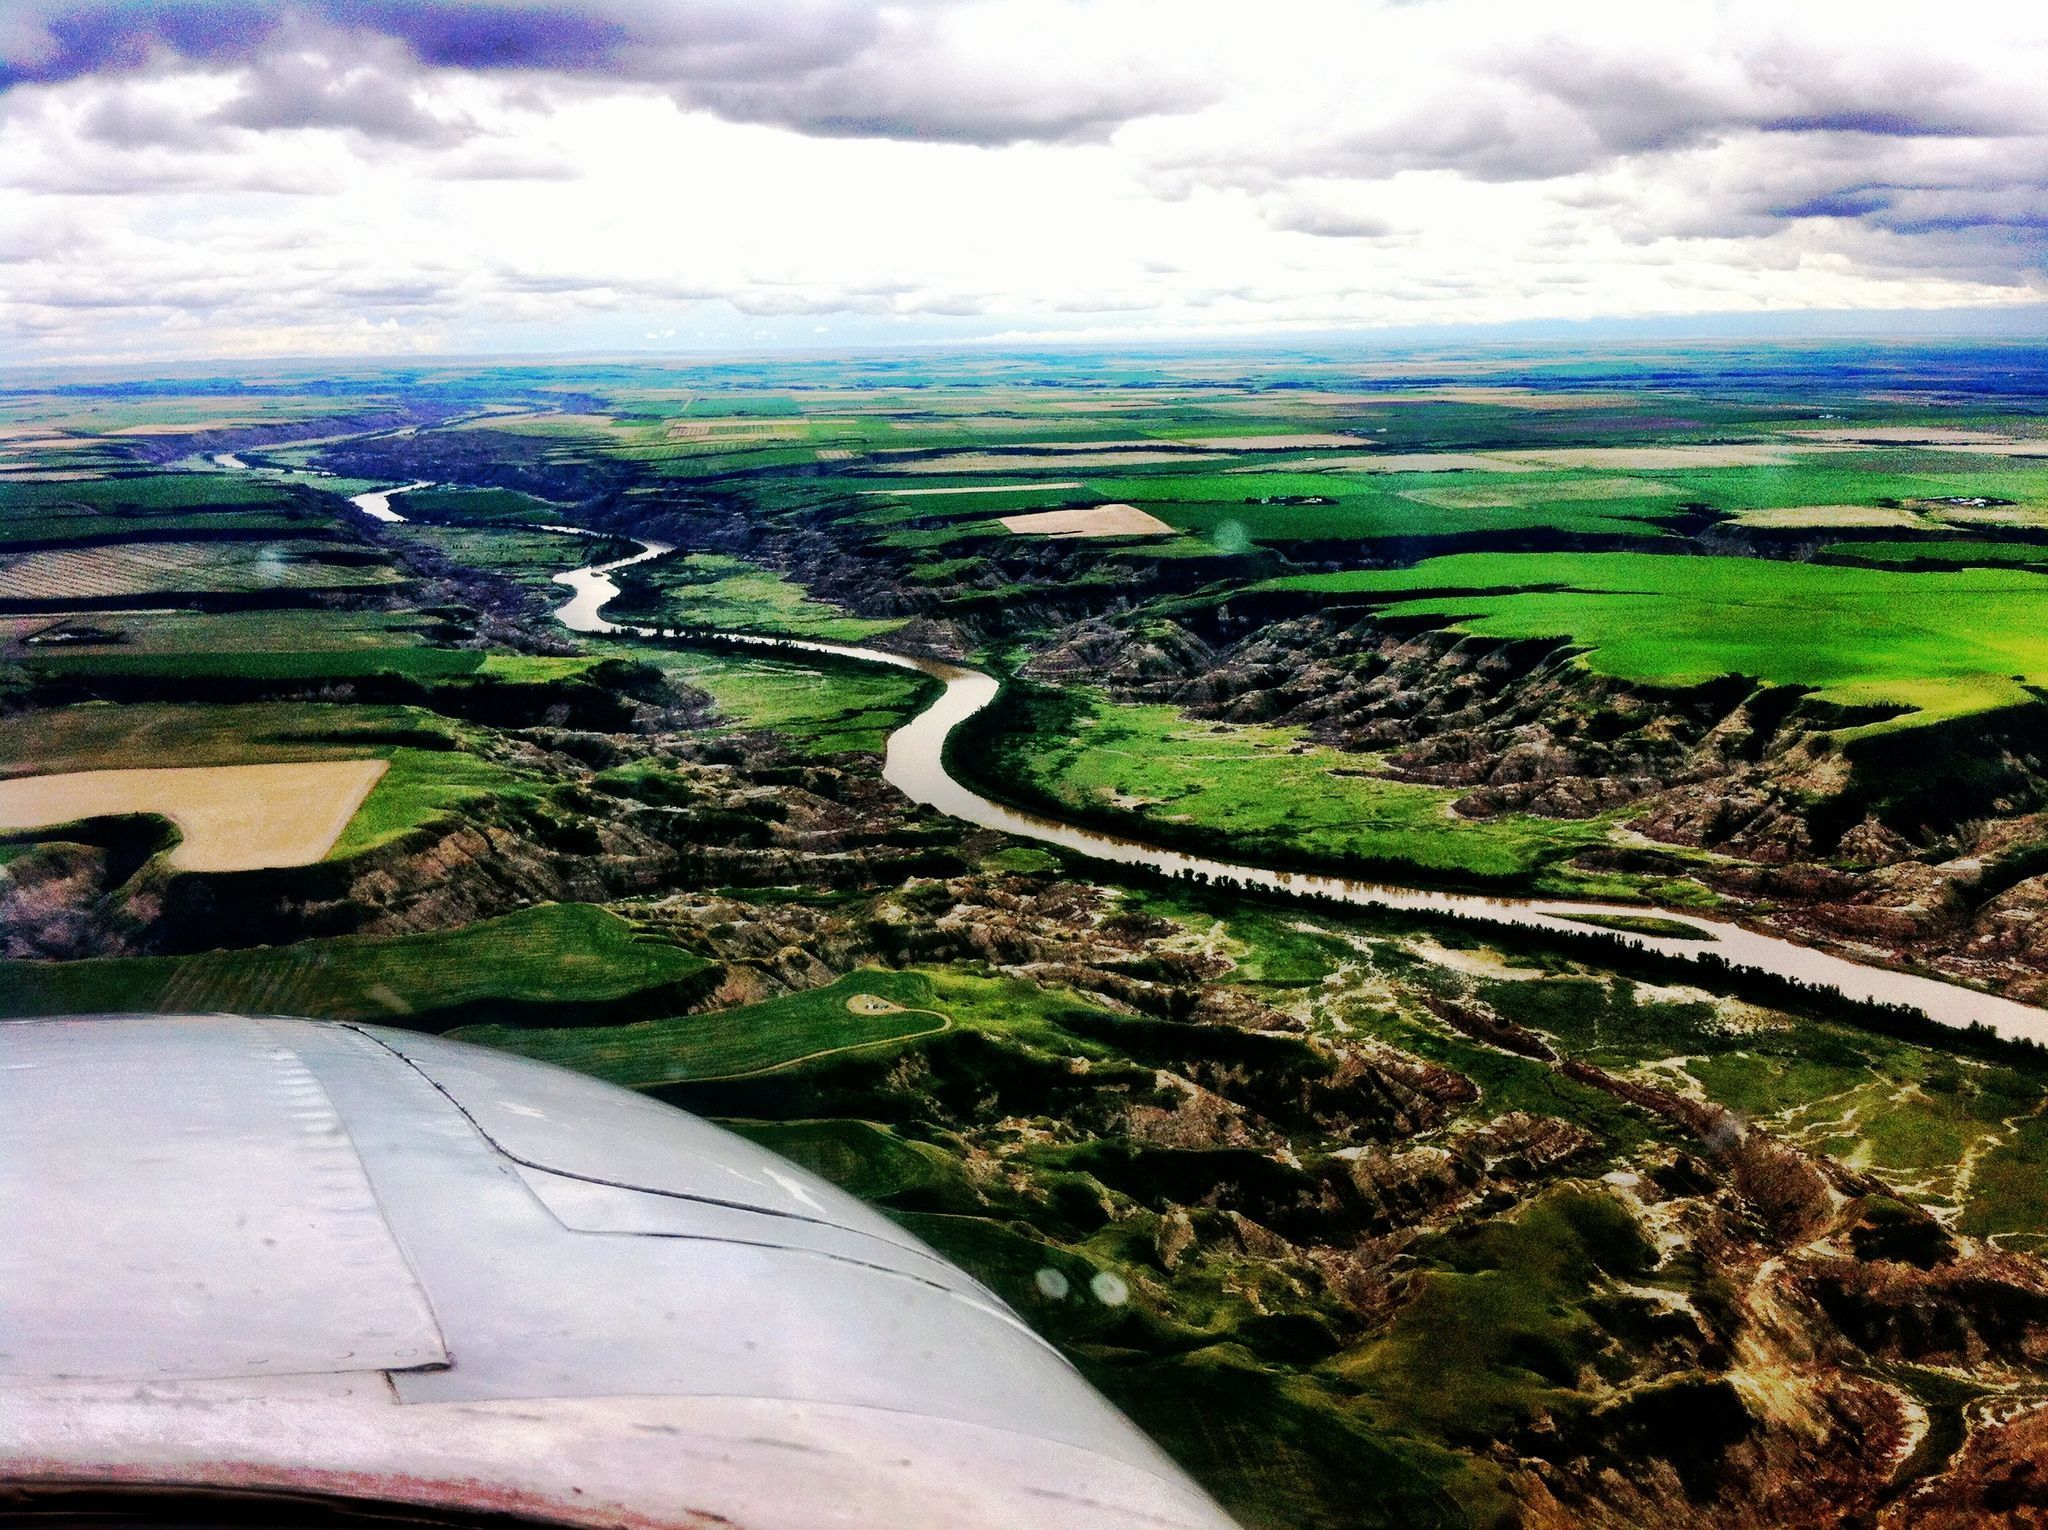 Beautiful day for flying along the river!